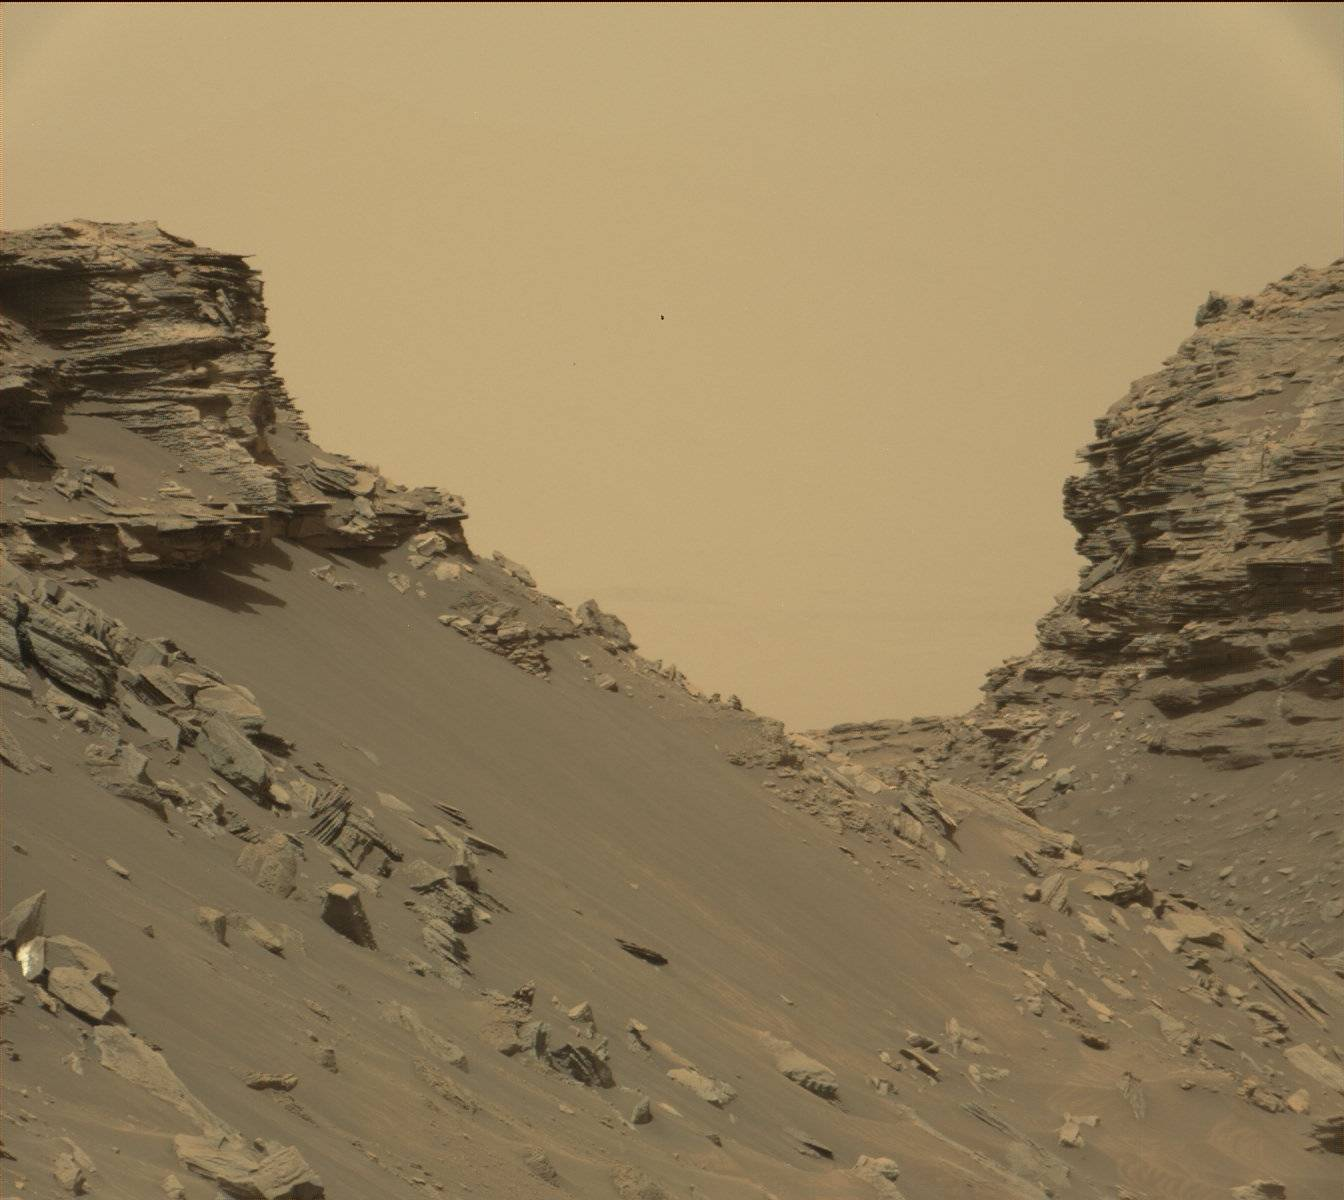 View from Mastcam on Curiosity showing sloping buttes and layered outcrops on lower Mount Sharp